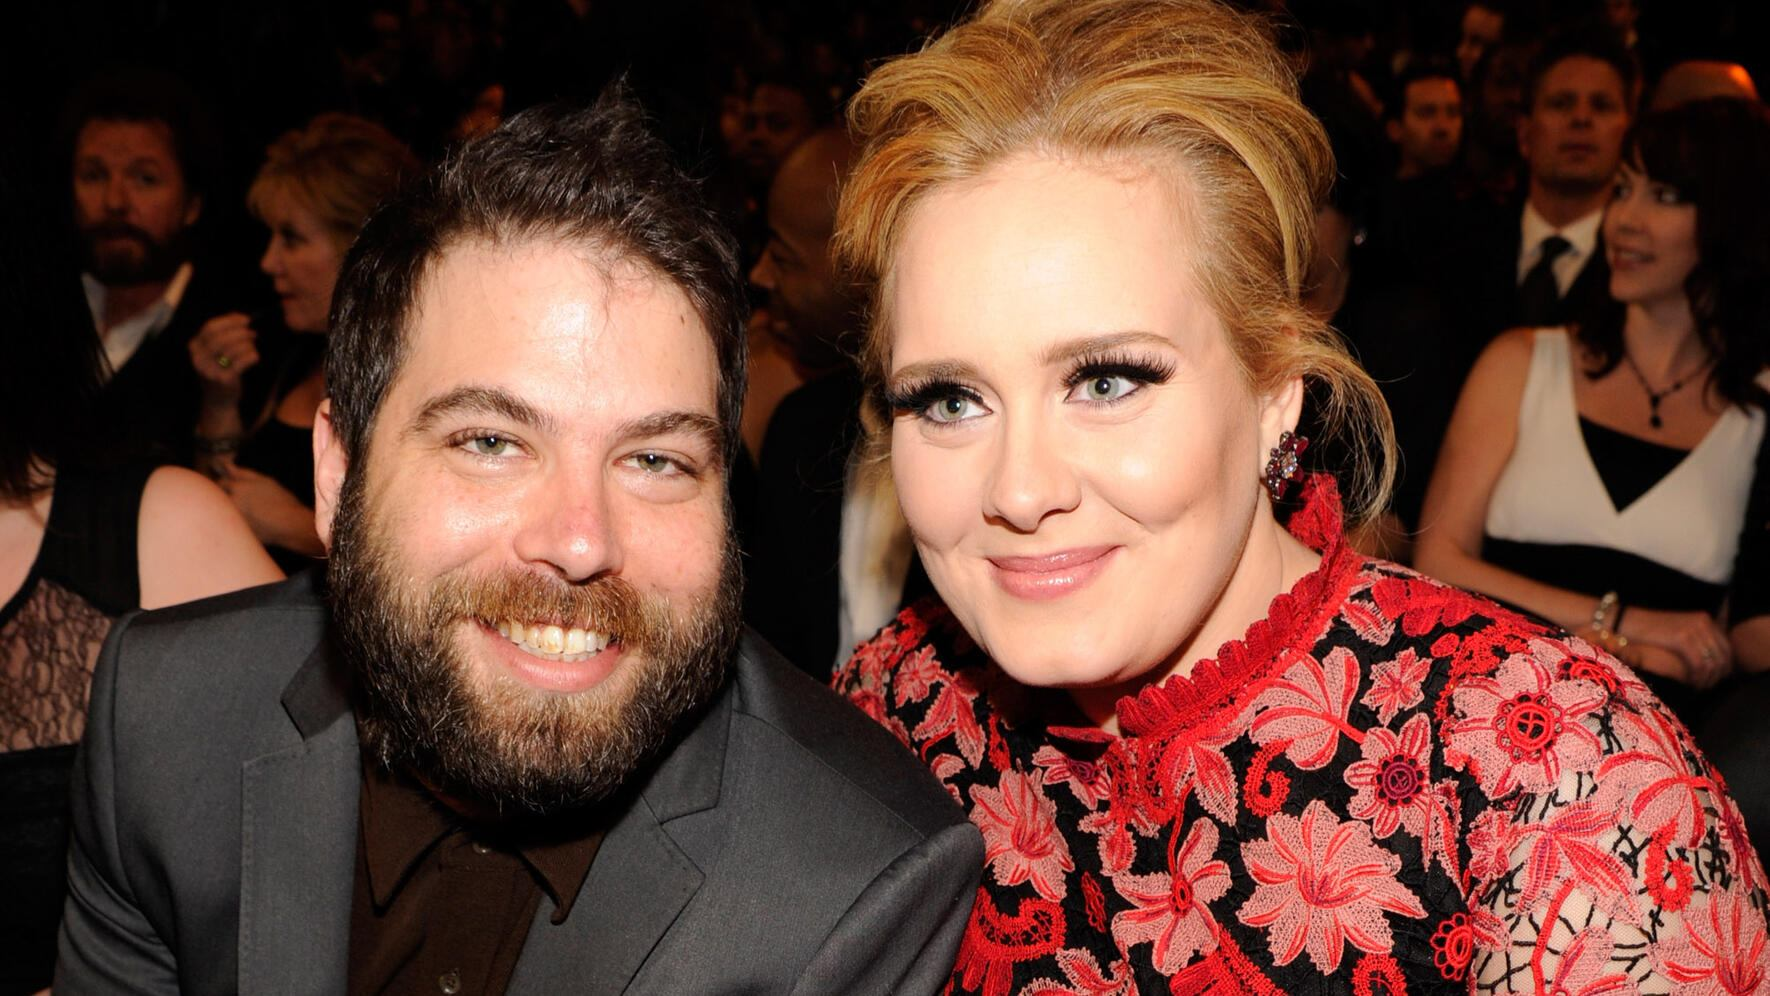 LOS ANGELES, CA - FEBRUARY 10:  Adele (R) and Simon Konecki attend the 55th Annual GRAMMY Awards at STAPLES Center on February 10, 2013 in Los Angeles, California.  (Photo by Kevin Mazur/WireImage)